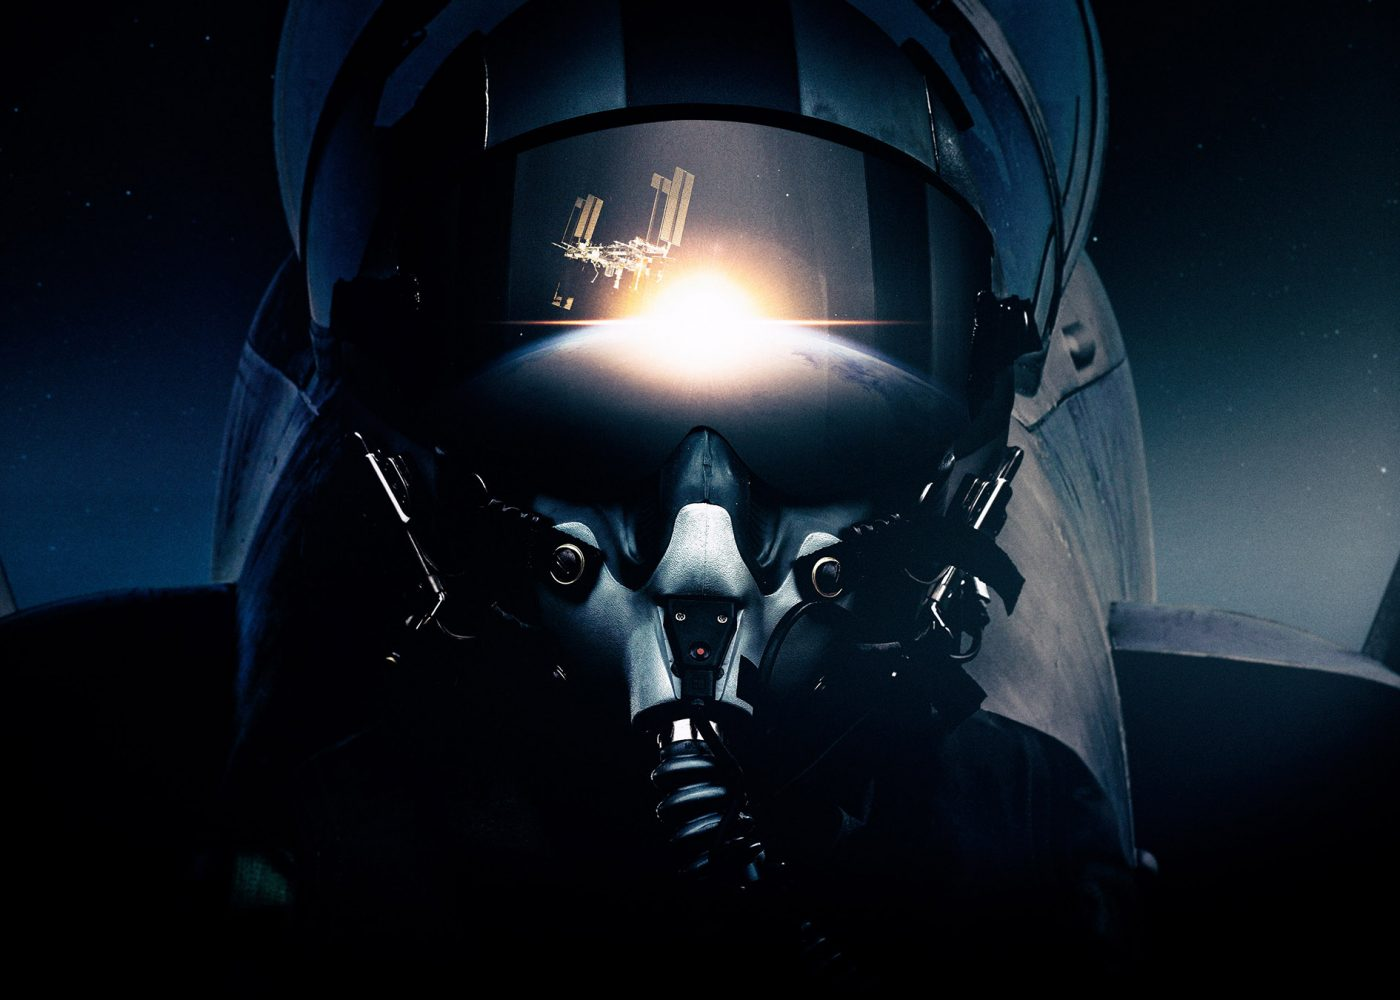 029 – Fighter Pilots in Space